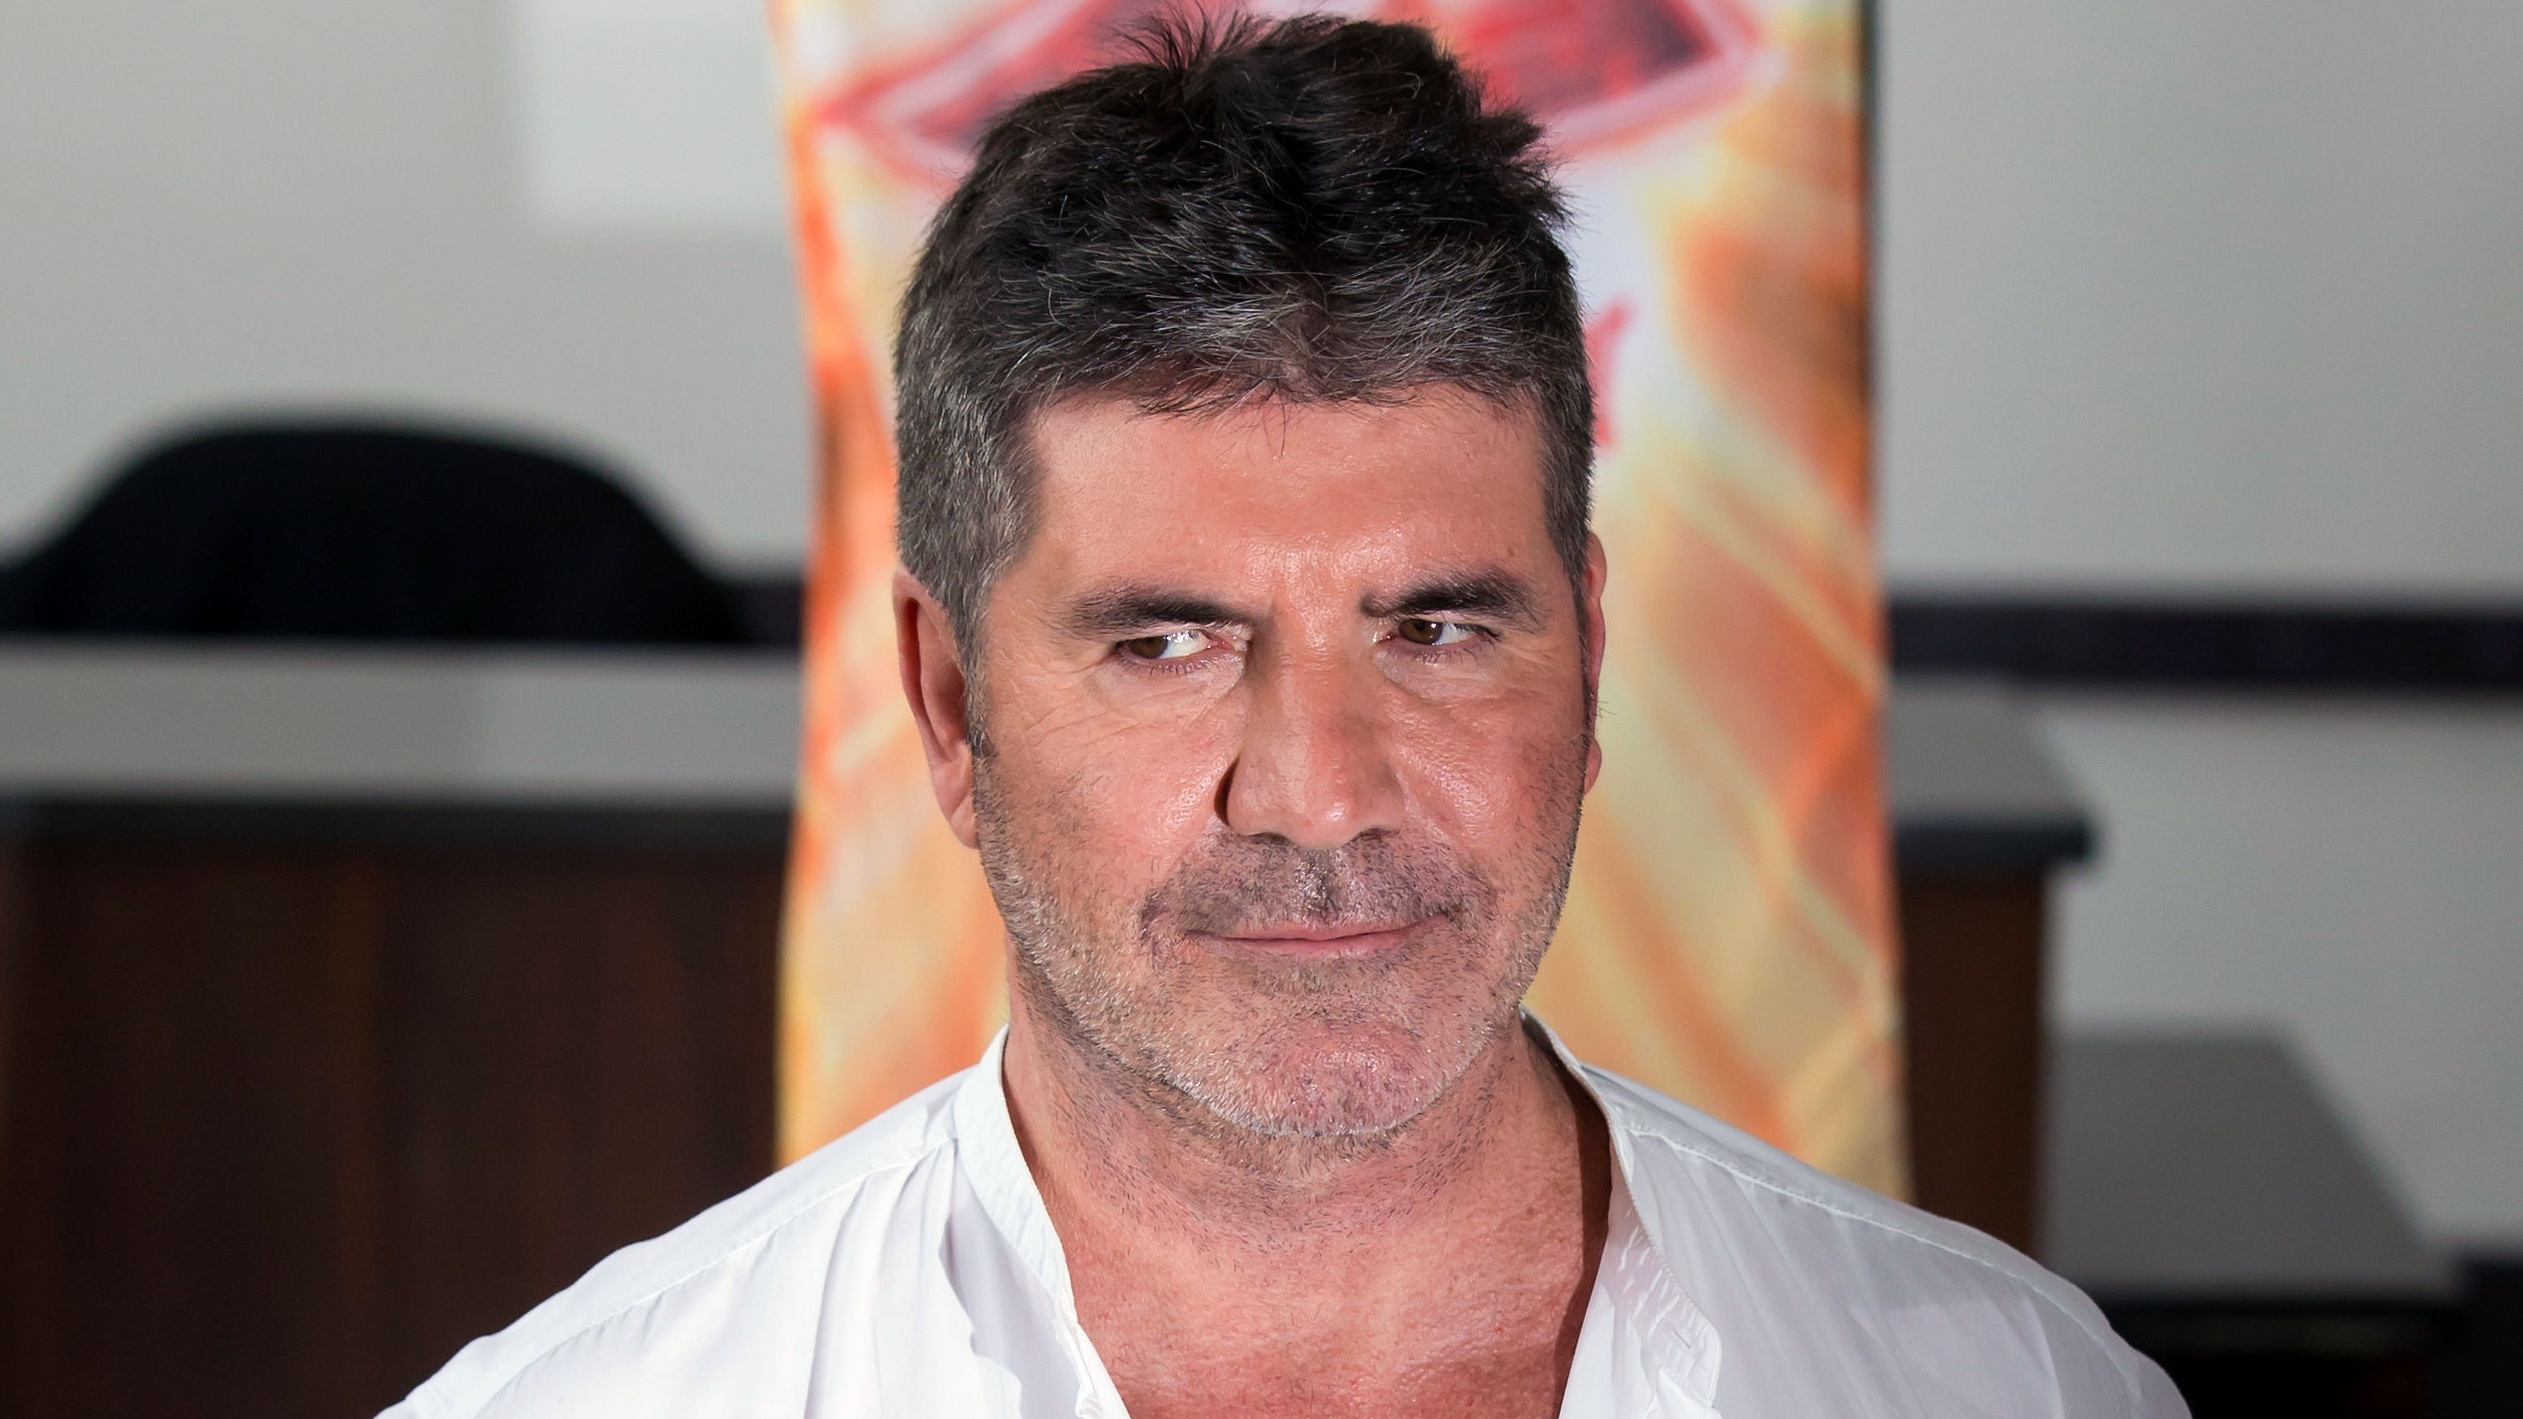 Simon Cowell 'taken to hospital after fall' (Jon Super/PA)